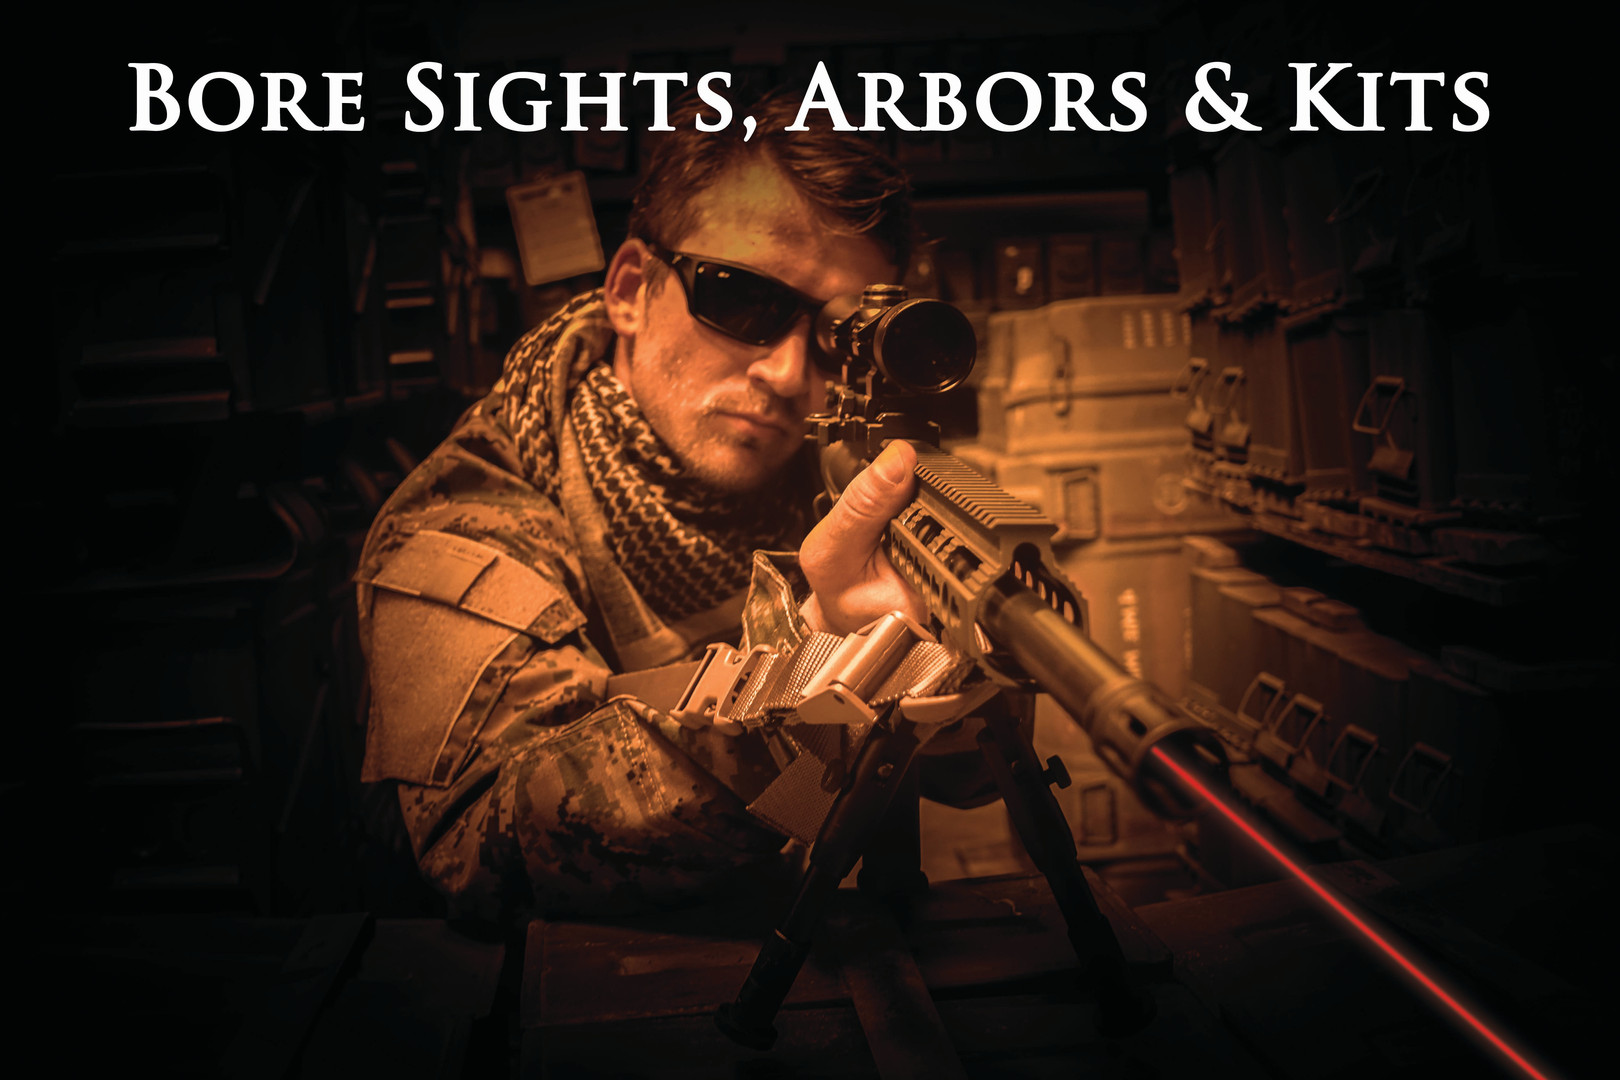 Bore Sight Systems